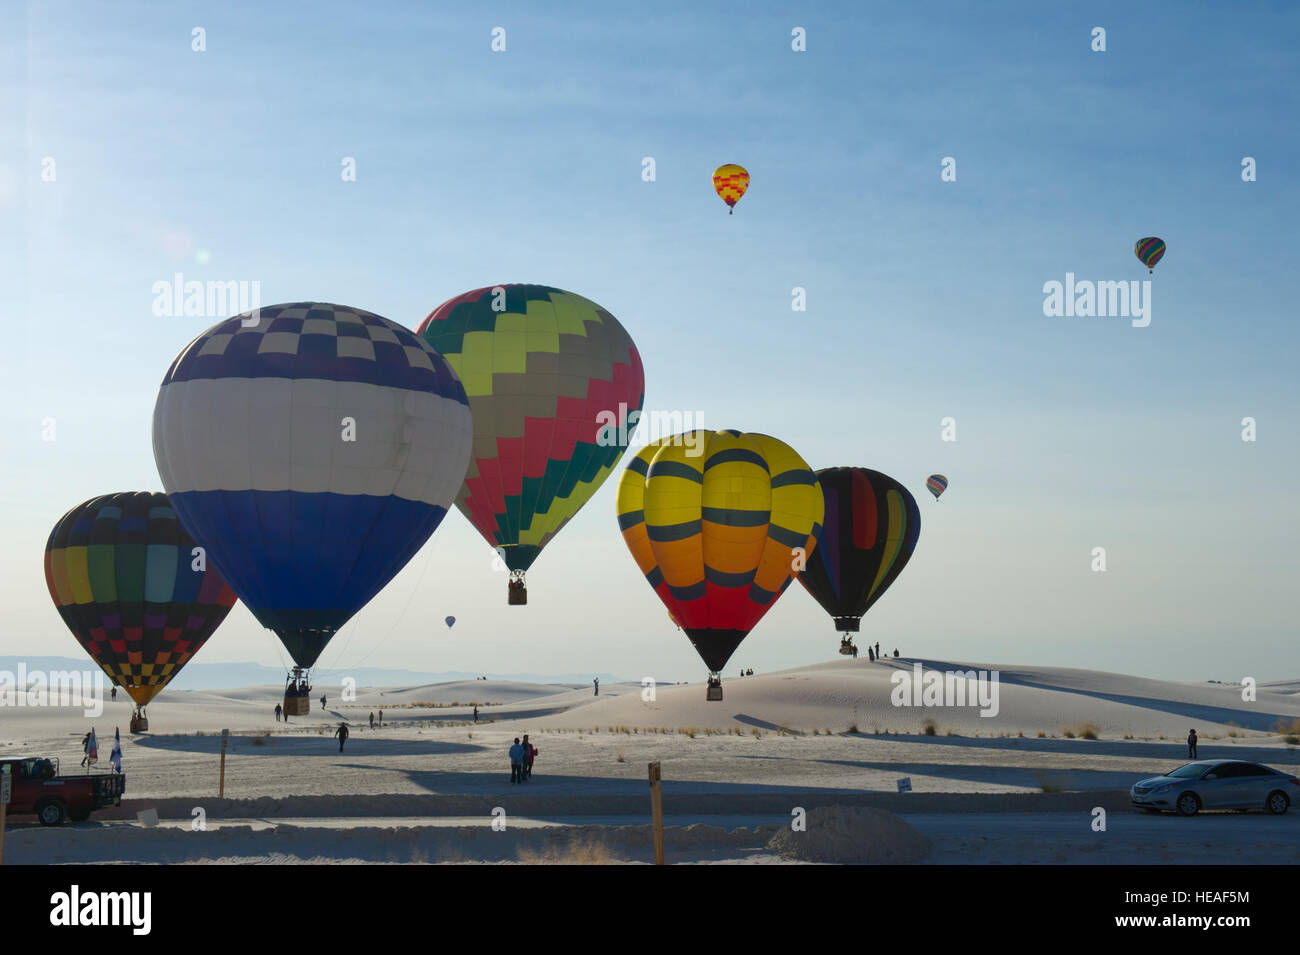 Hot air balloons fly above the White Sands National Monument, N.M., during the 21st Annual White Sands Balloon Invitational Stock Photo